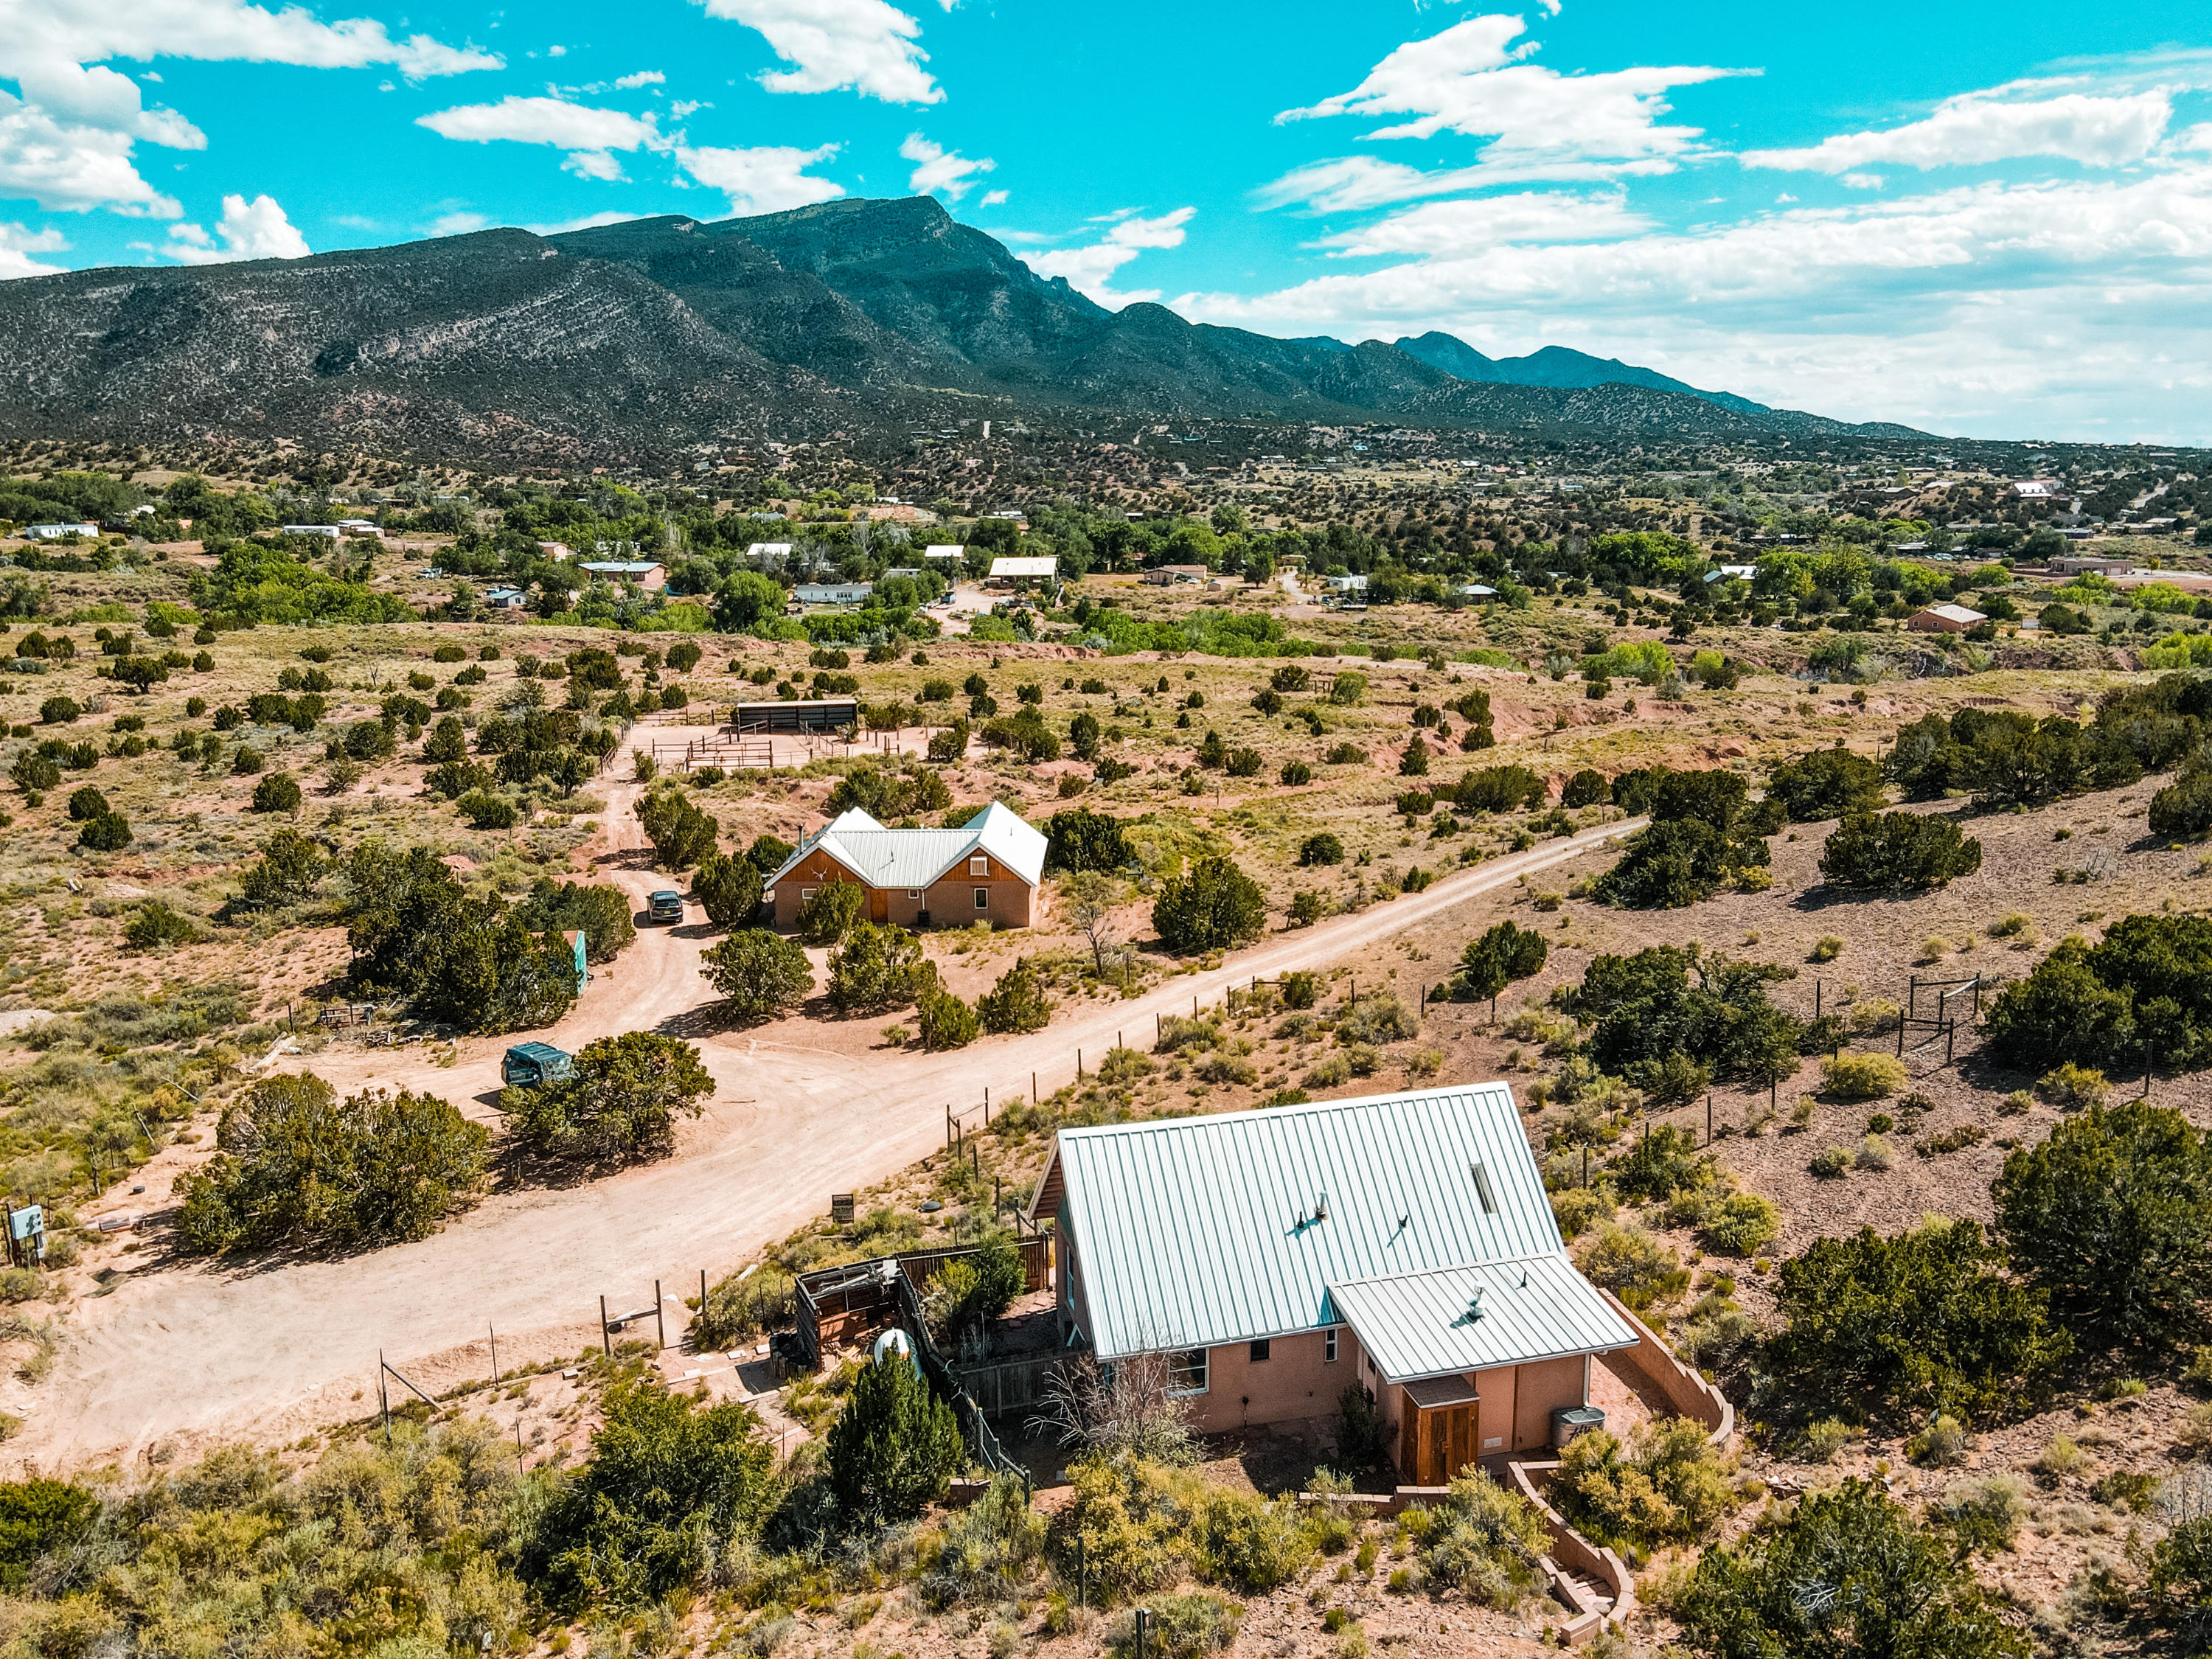 Fall in love with this adorable adobe home on 3.67 acres. 2 Bed (1 bed plus upstairs loft), open kitchen and living room with cathedral ceiling. Master bedroom with wood beam ceilings downstairs with 3/4 bath and utility/mud room. Stained concrete & wood flooring, adobe walls, radiant plus baseboard heat. Great vacation rental, artist studio or getaway home. Horses allowed. Gorgeous views of the Sandia Mountains and rolling landscape of Placitas New Mexico, what a find!